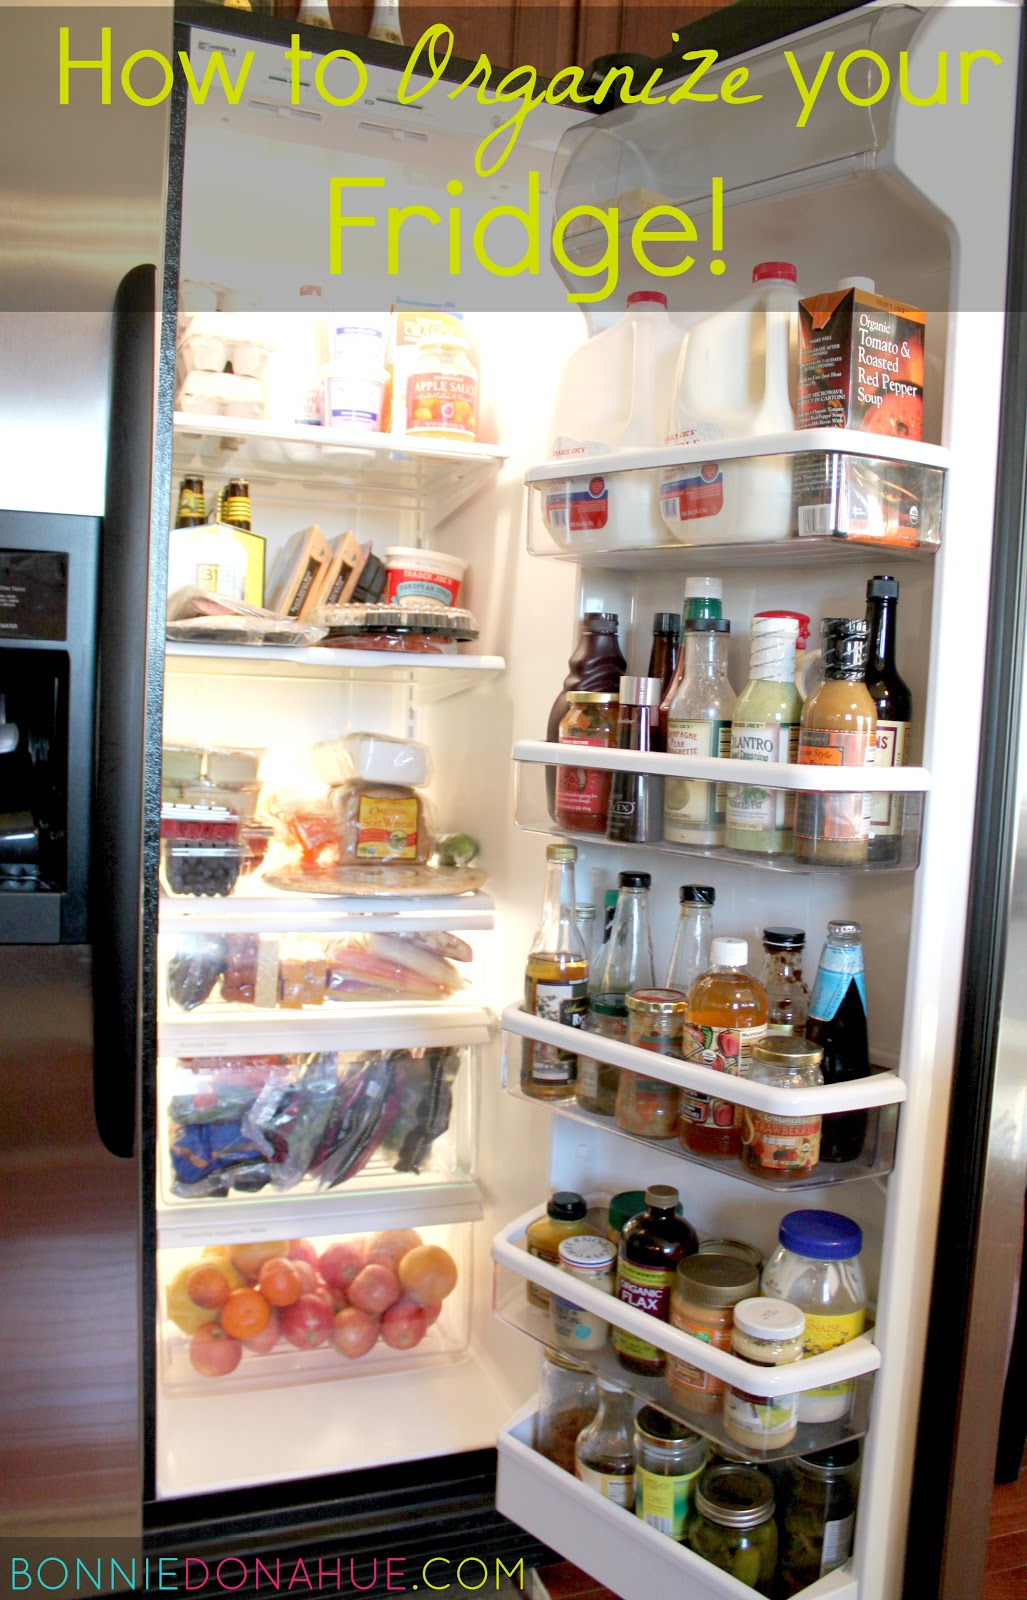 Mar 26,  · Whether living with my family or roommates, I've always been in a situation where fridge space was tight. And since most of us share our fridge with at least one person, we all know the struggle of keeping a fridge organized.